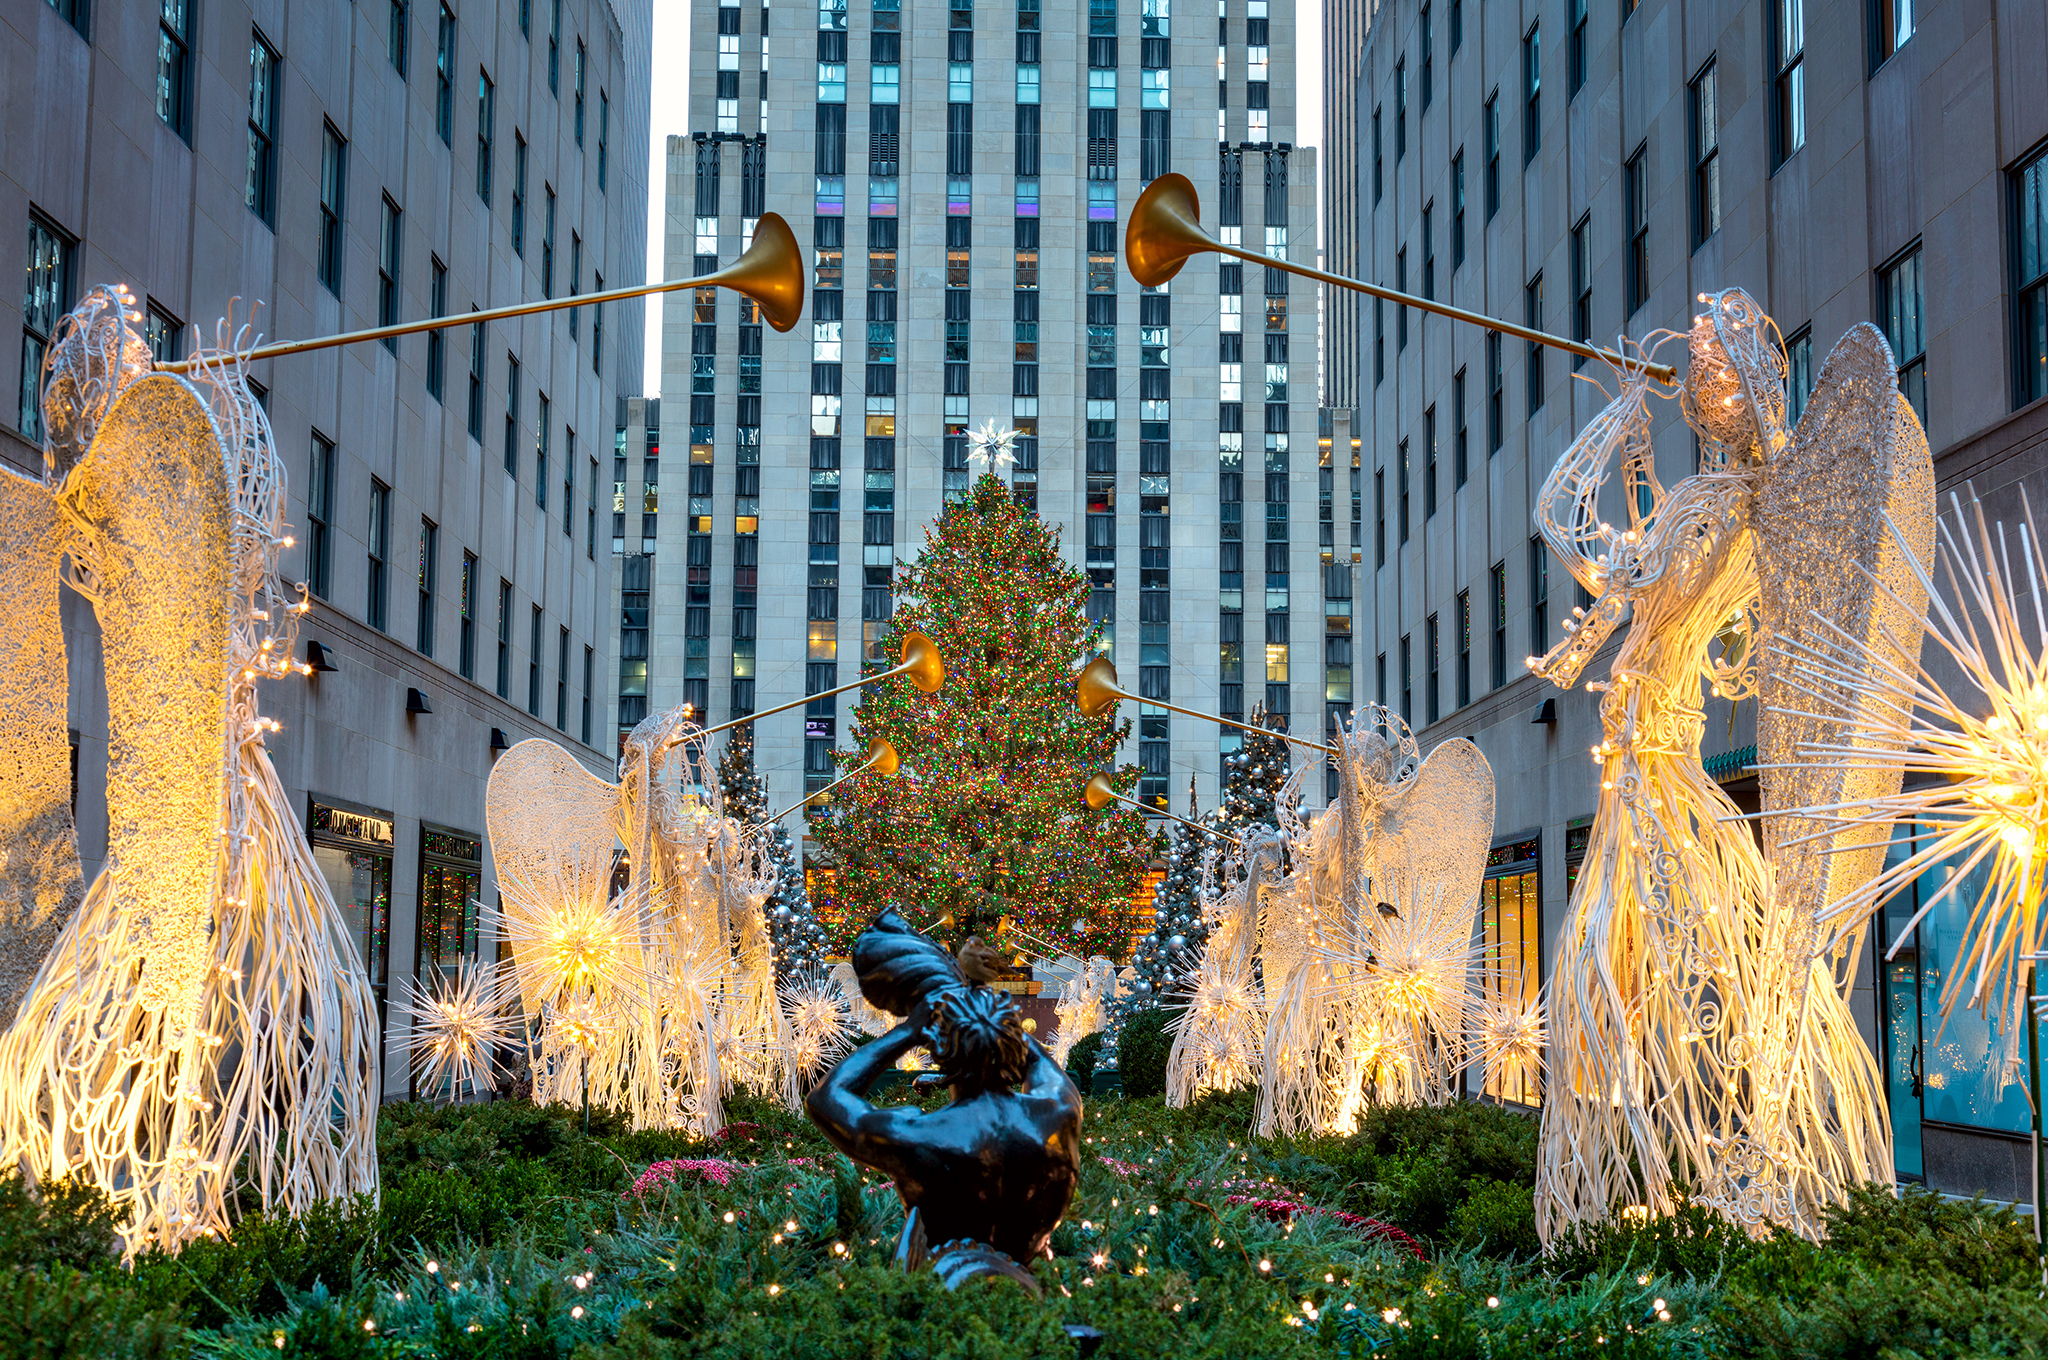 The 2019 Rockefeller Center Christmas Tree has been officially chosen